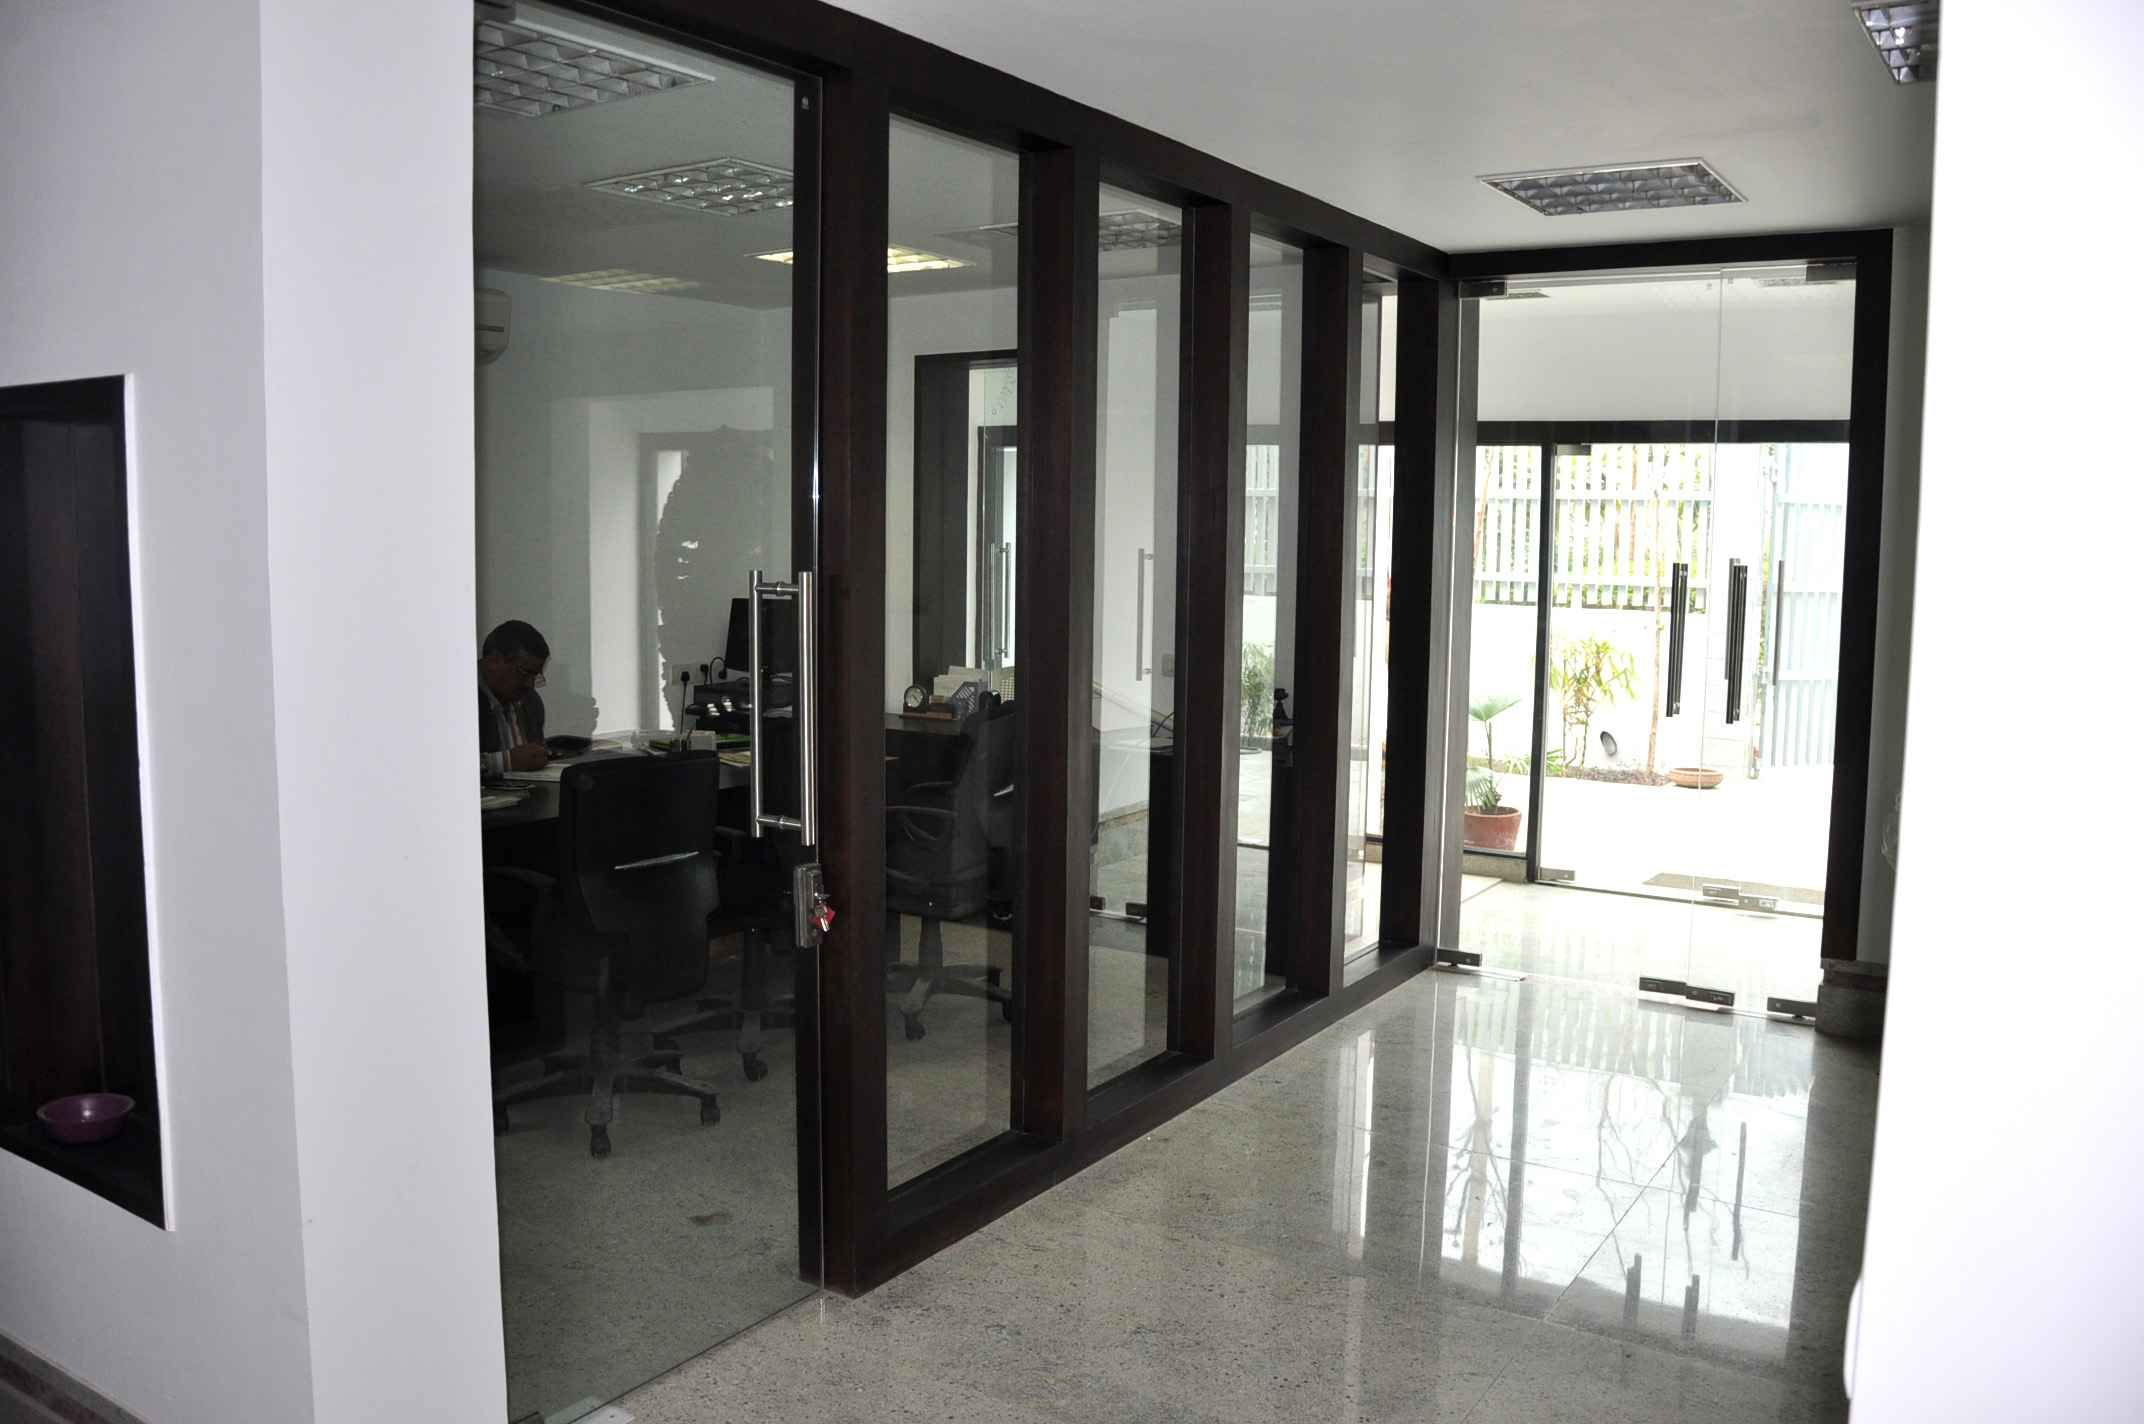 The Corridor Contains Office Cabins And Meeting Spaces On Either Sides Enclosed By Glass